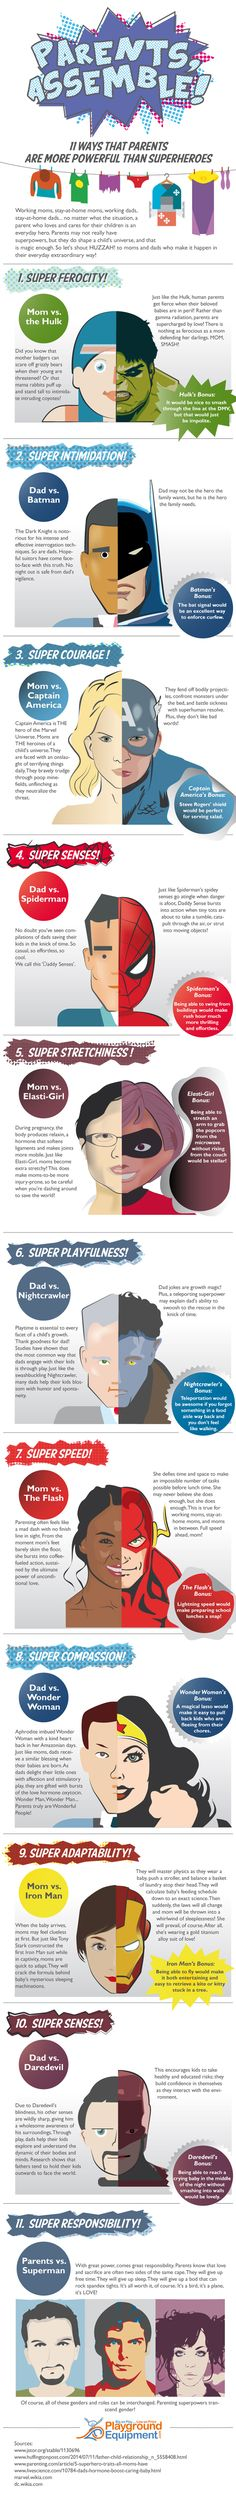 Who says parents can't make fantastic superheroes? This infographic delves into the super powers it will take to bring out the hero in every parent. Parenting Goals, Parenting Quotes, Kids And Parenting, Parenting Hacks, Blockchain, 21st Century Skills, Cute Little Things, Classroom Displays, Thinking Skills